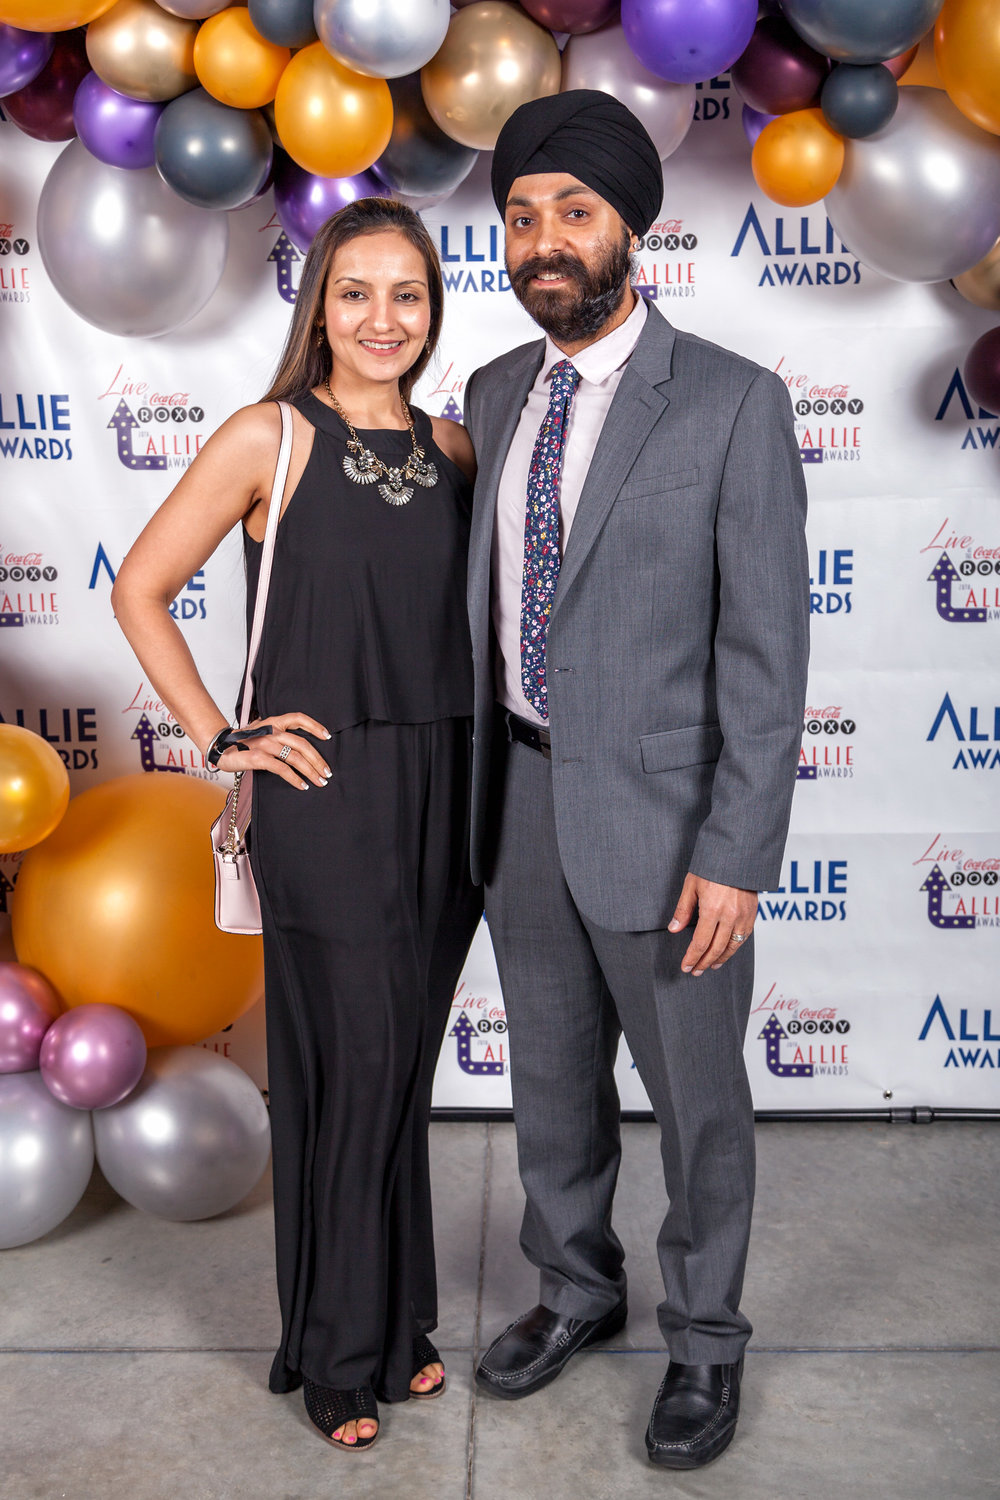 20180304_Allie-Awards_064.jpg